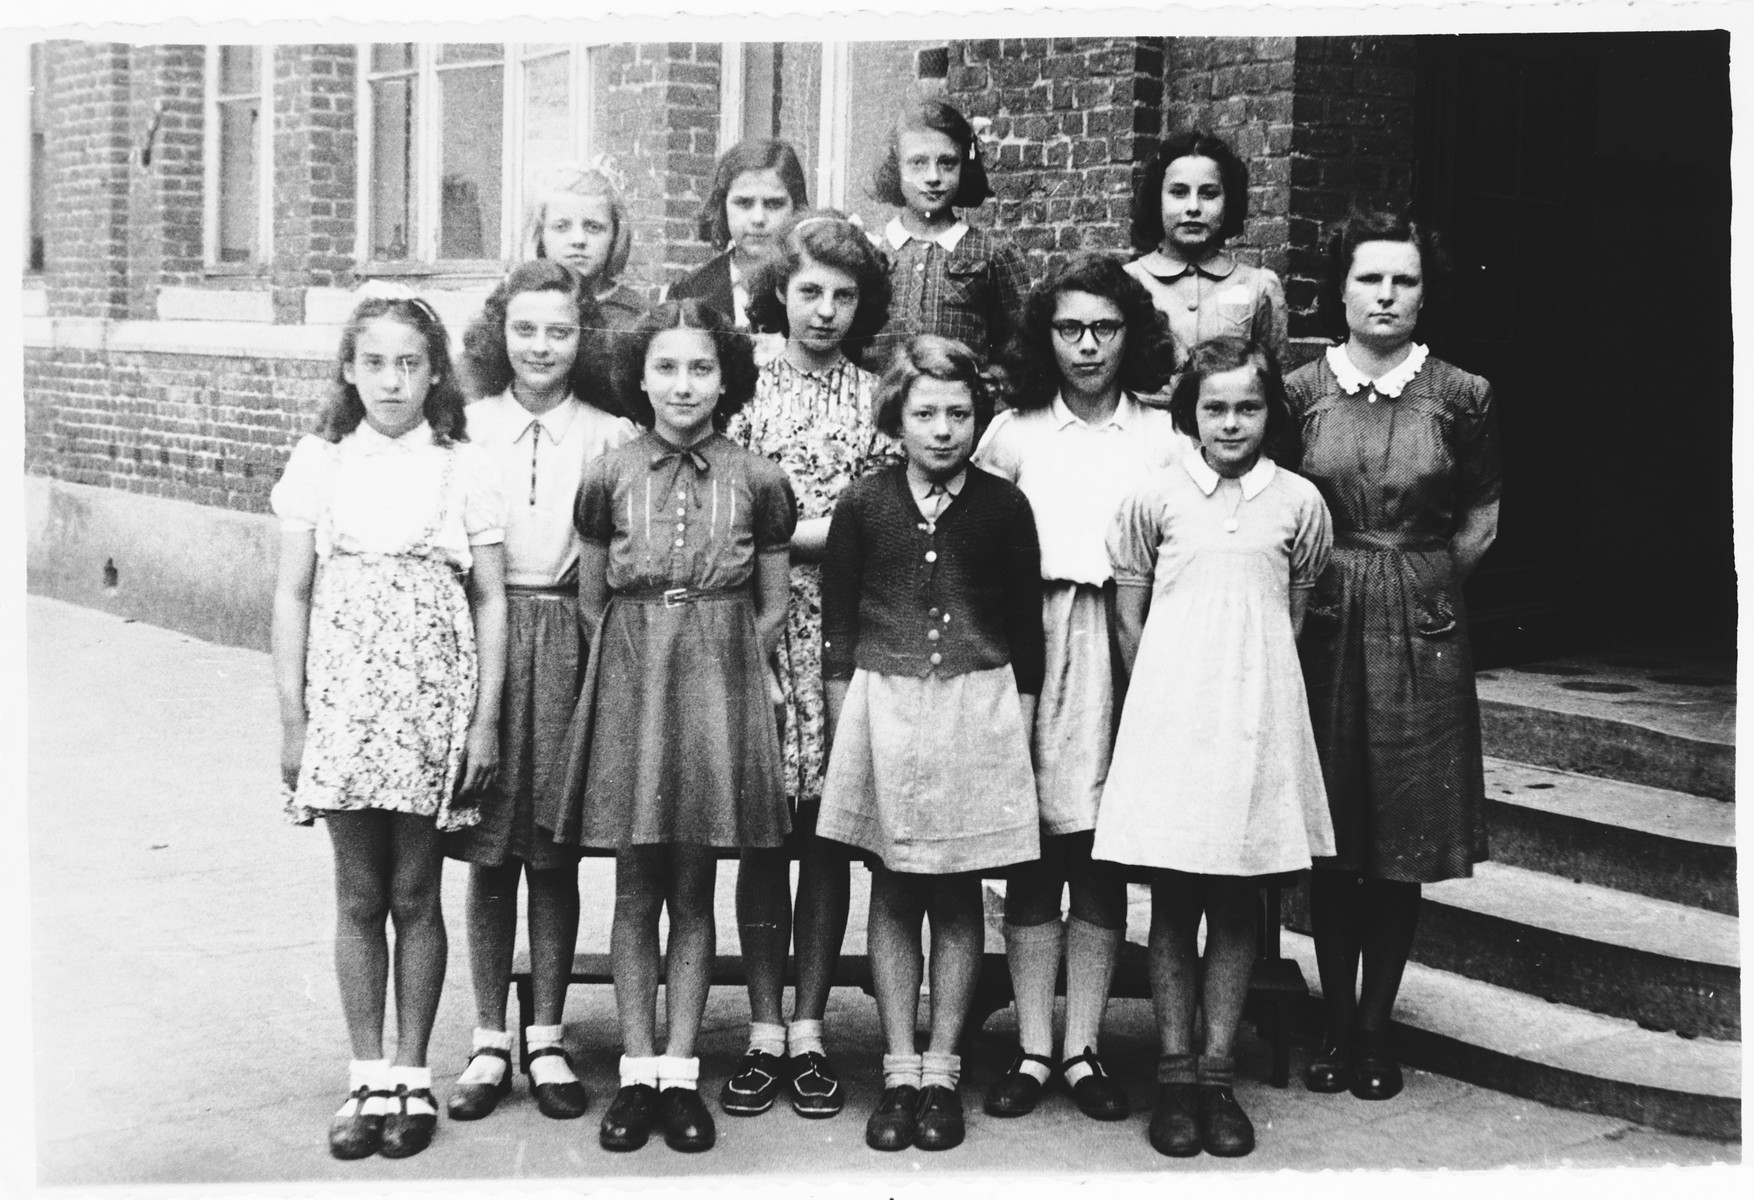 Ida Szajnfeld poses with other schoolmates in a Catholic school after the war.